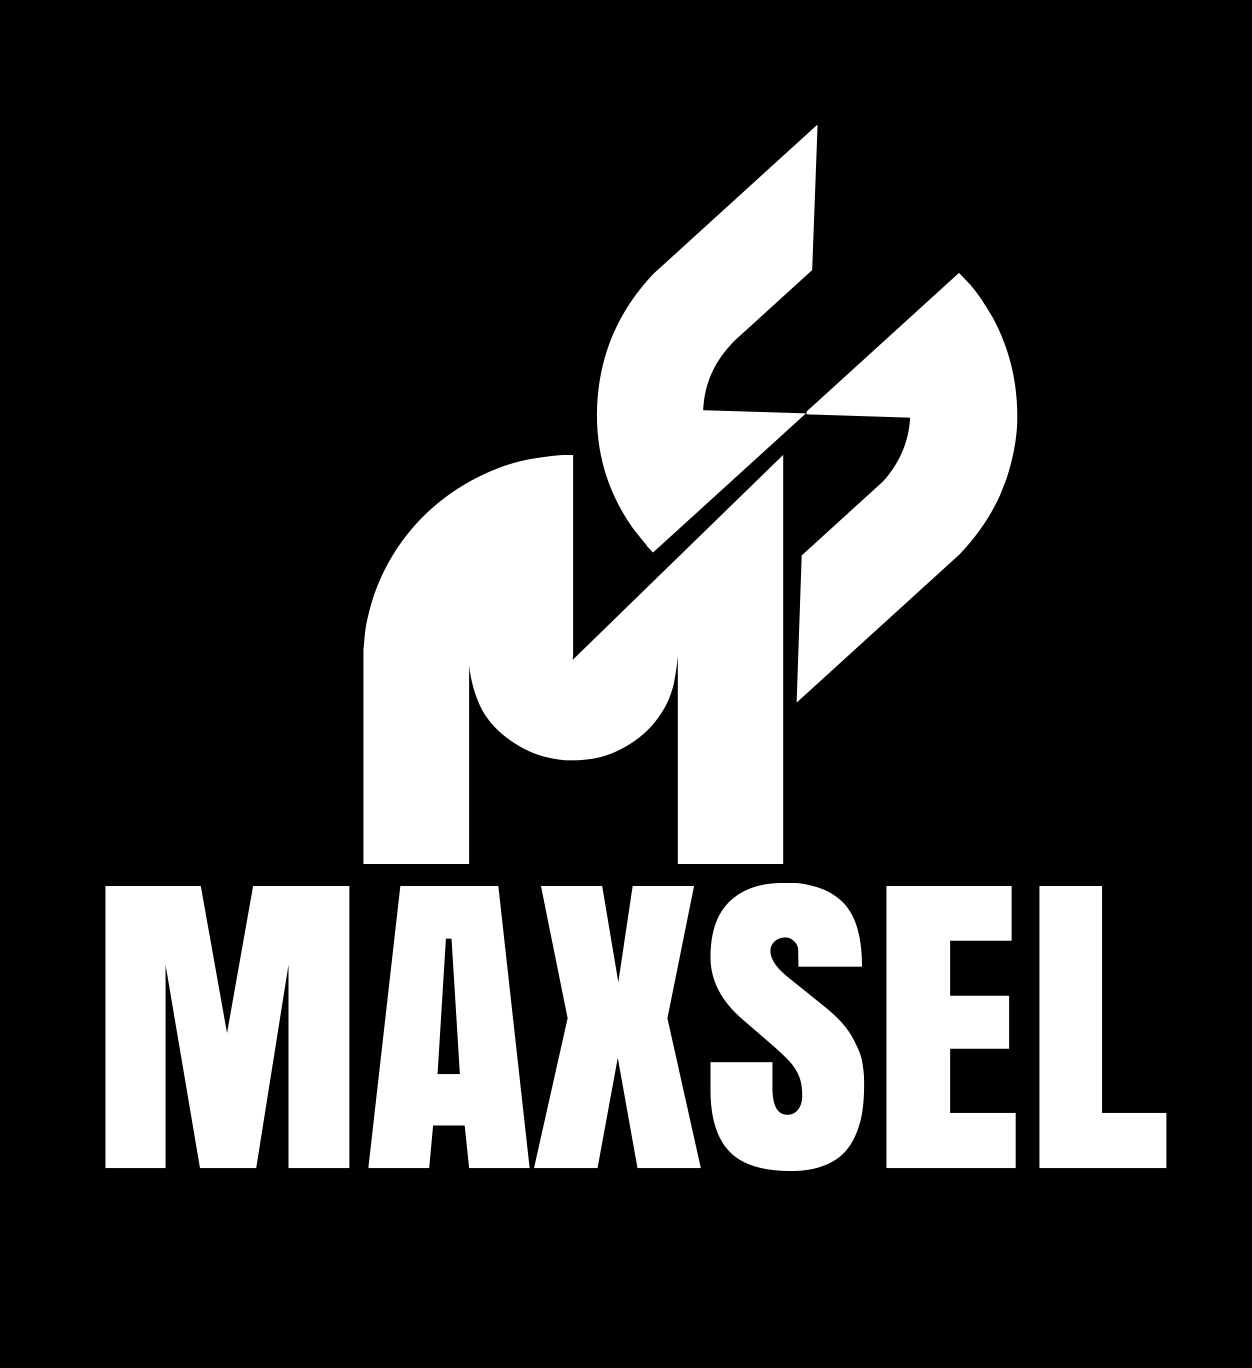 Maxsel's Merch Shop